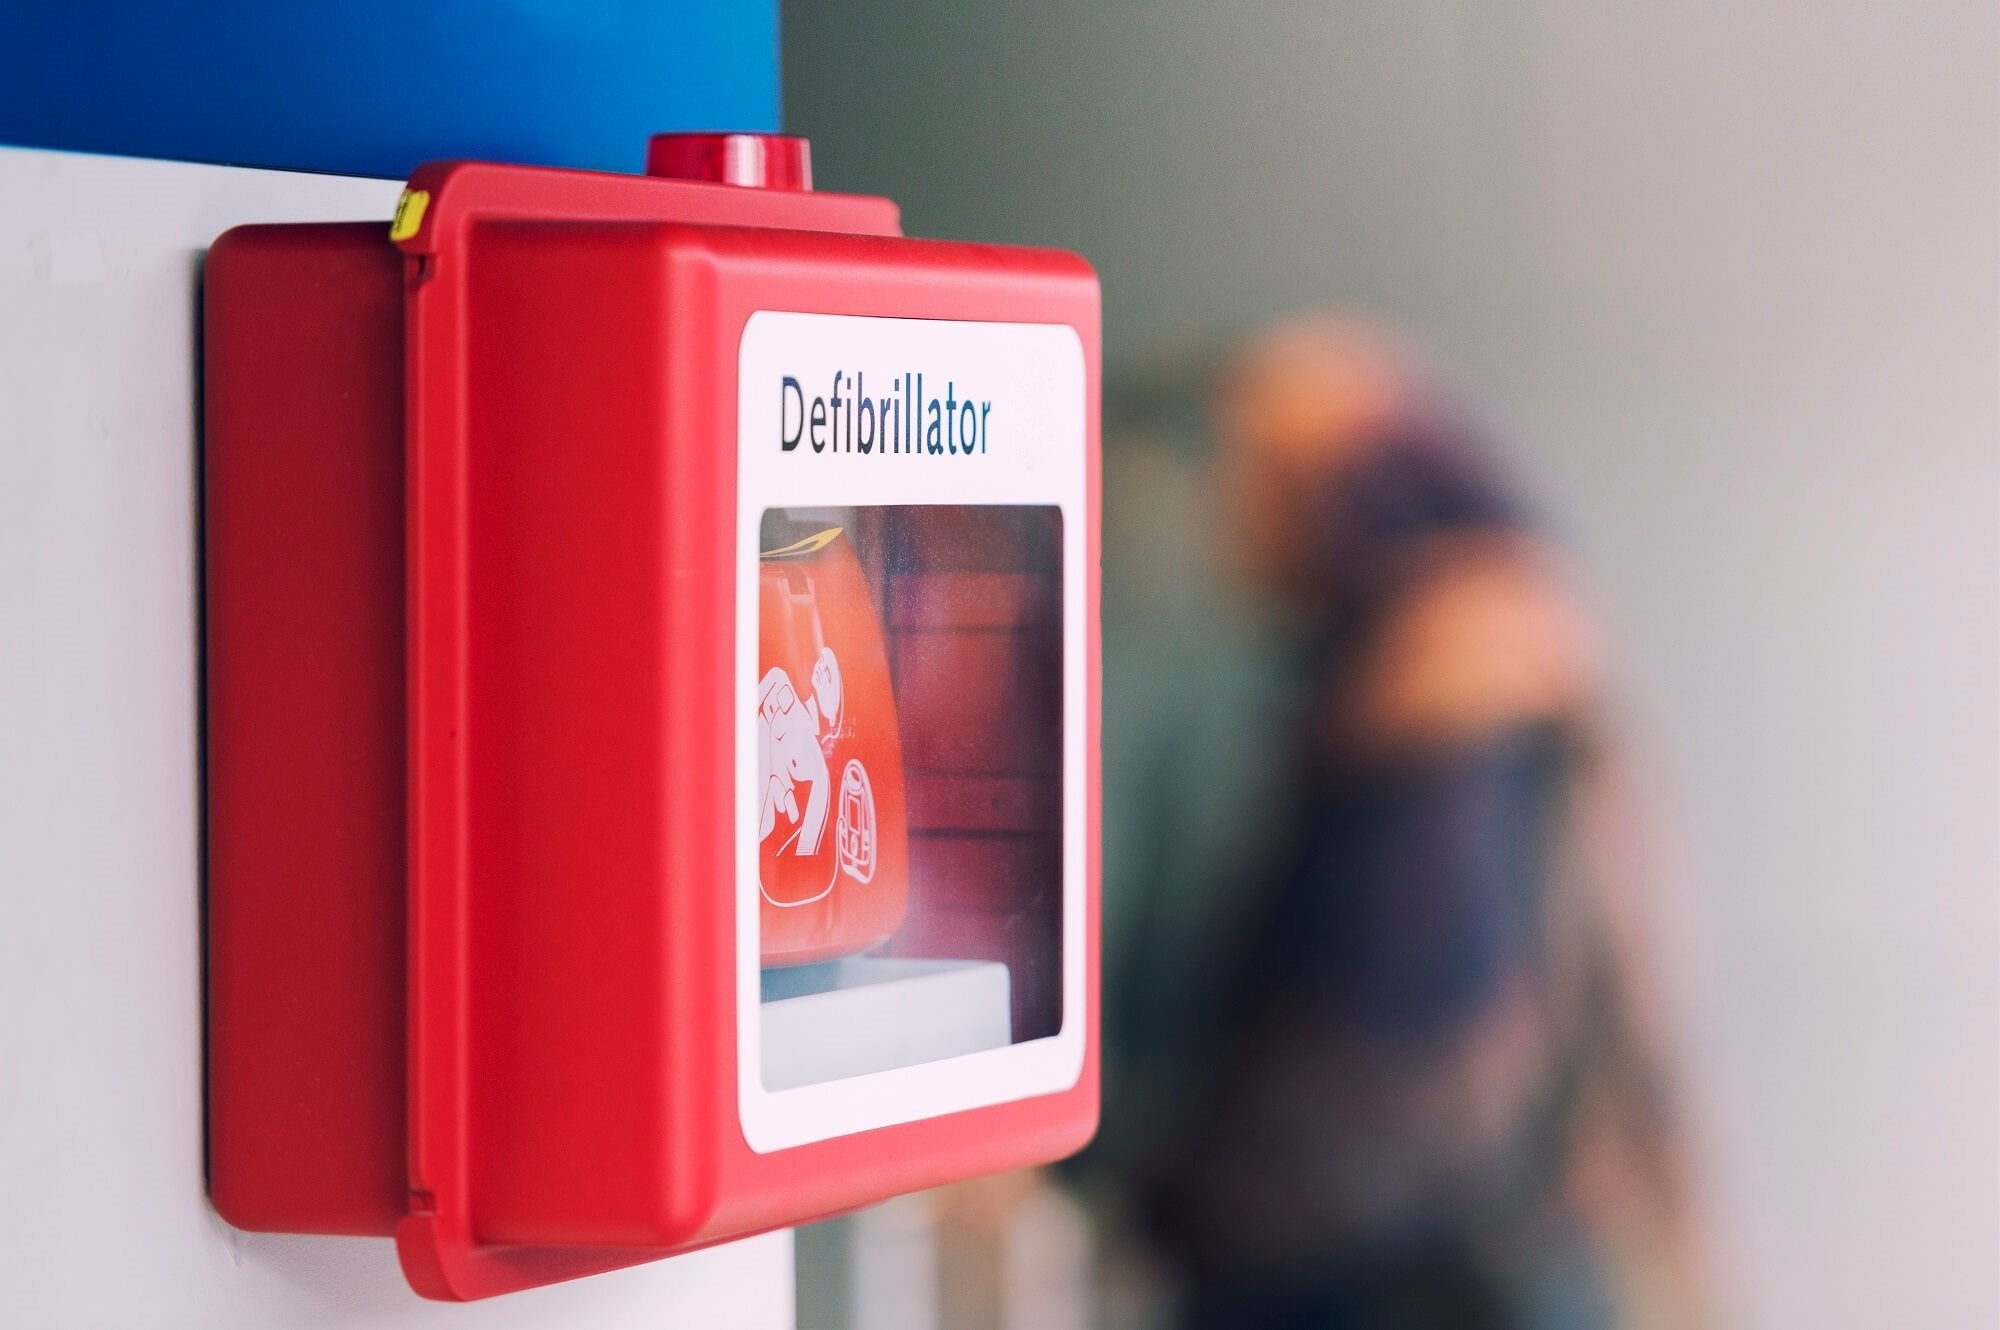 Public AEDs are cost-effective for out-of-hospital cardiac arrest and are associated with better outcomes.